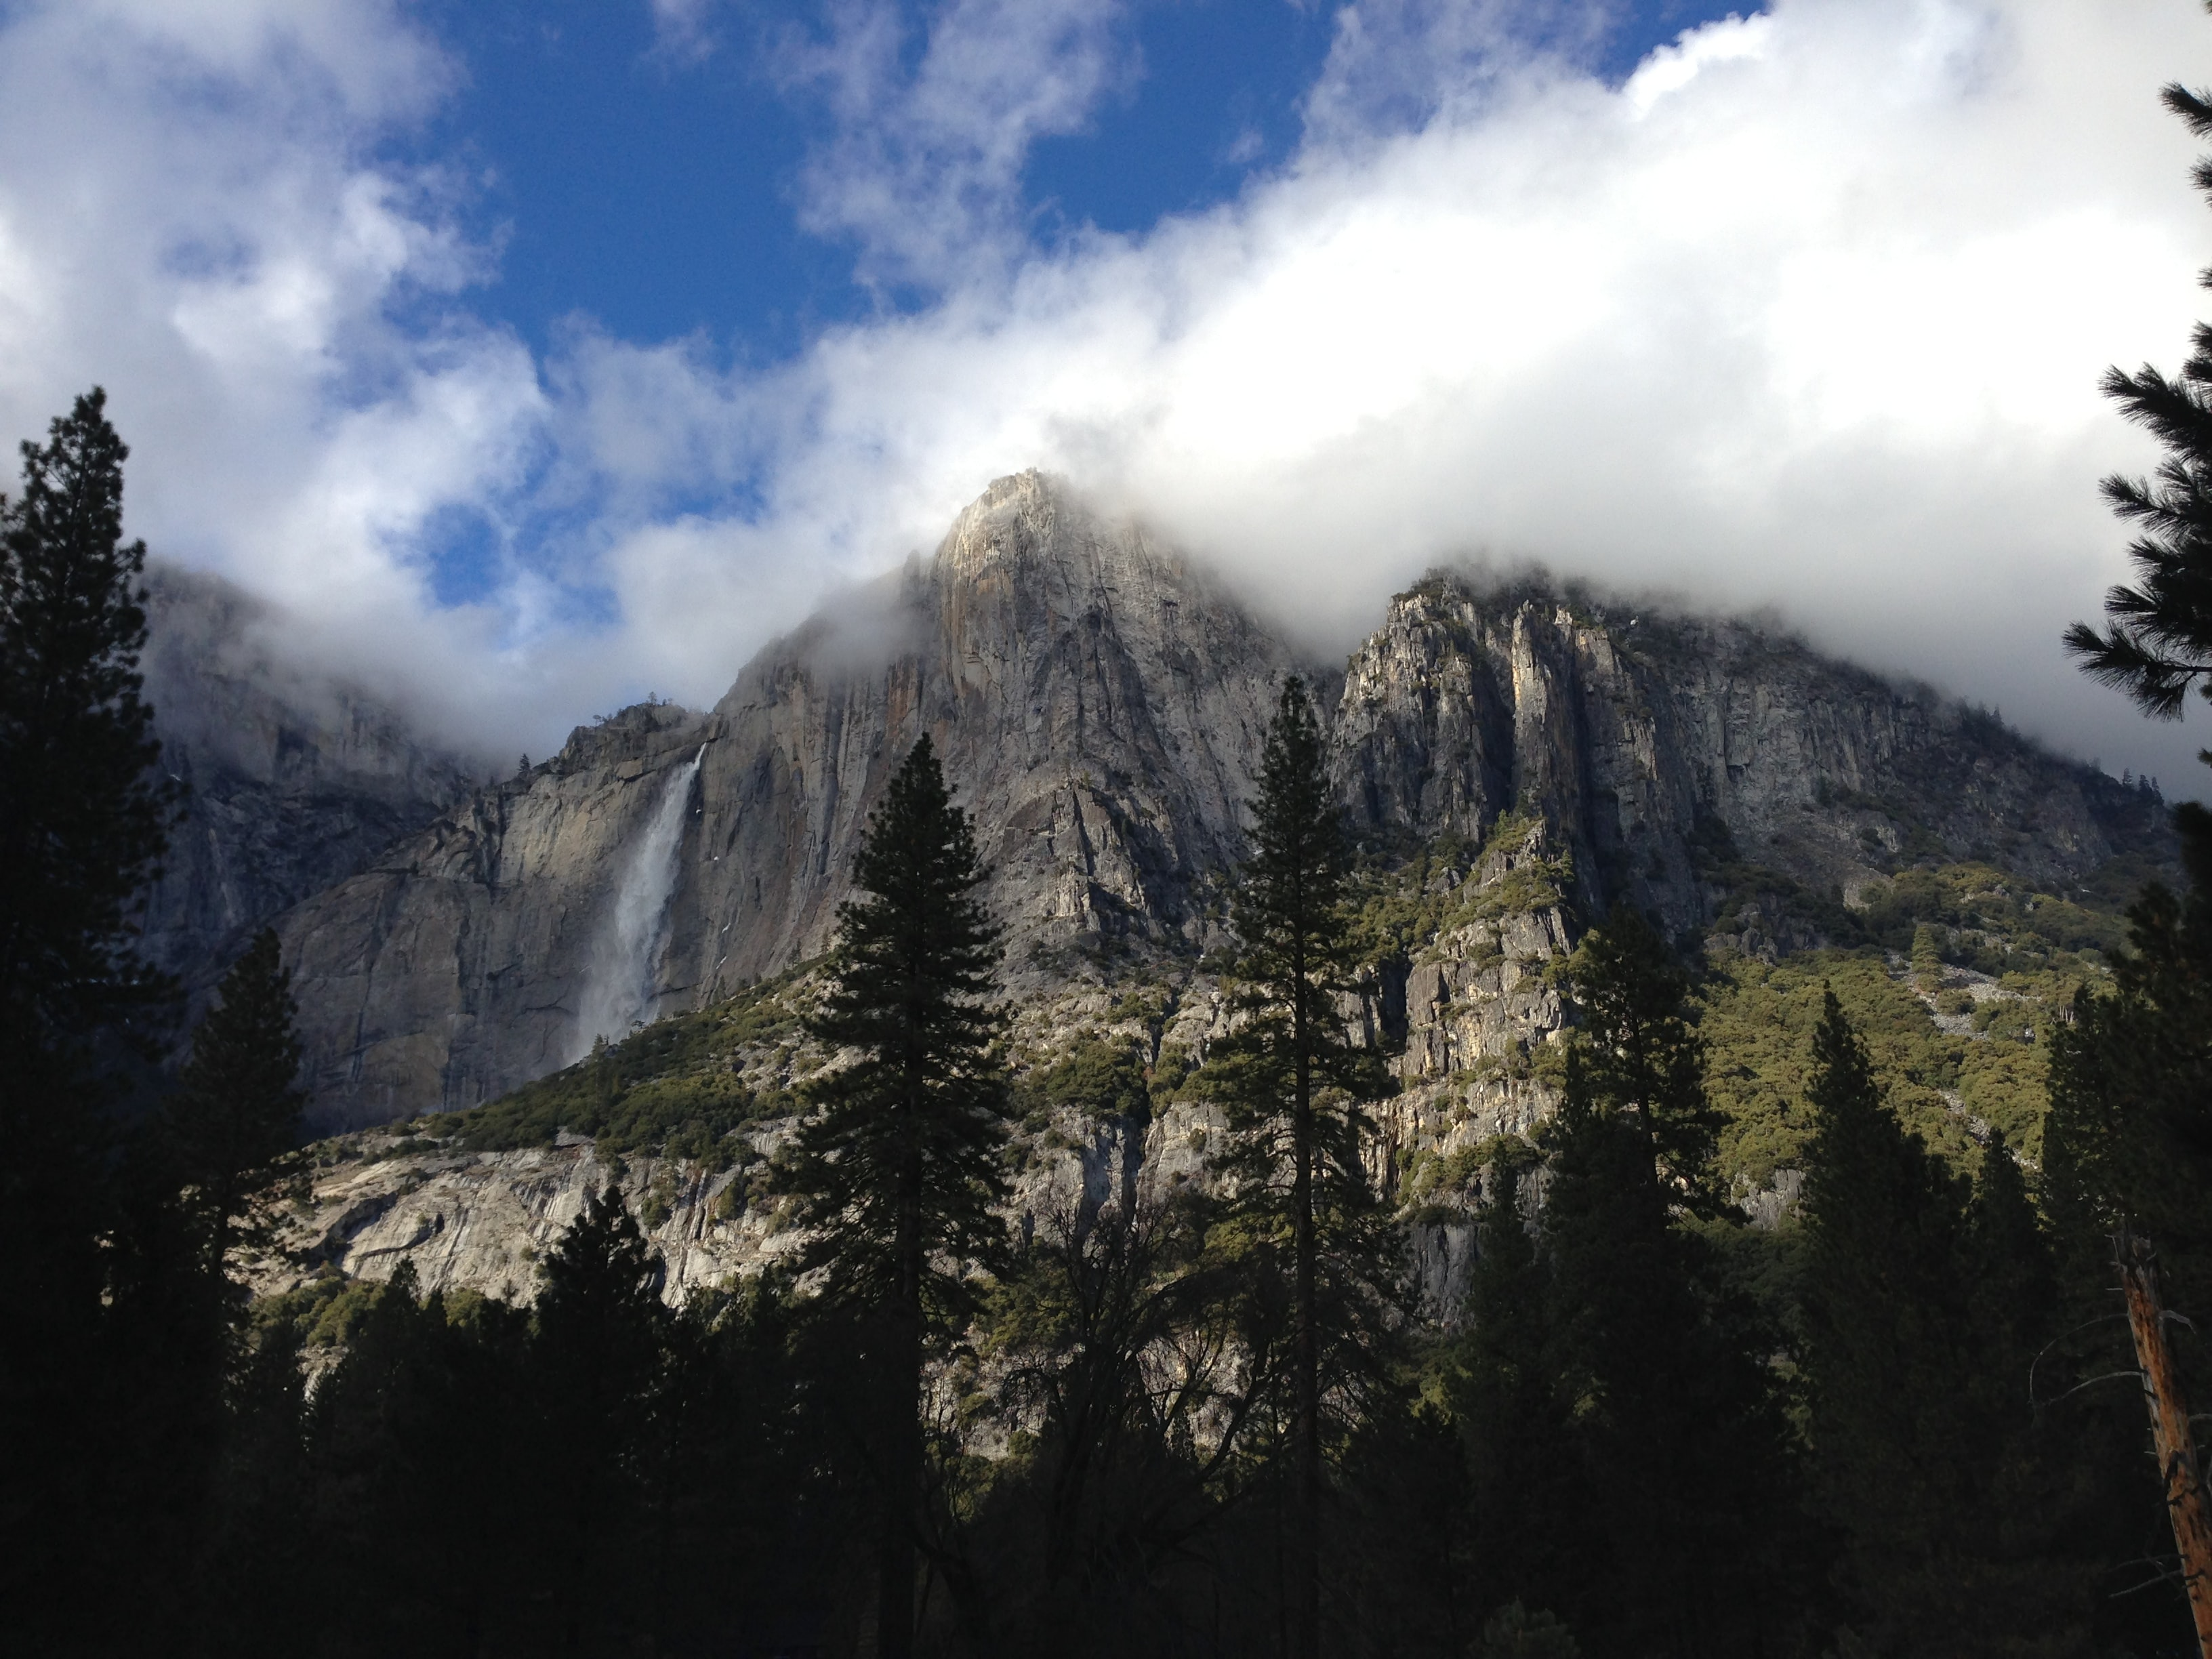 A waterfall pouring down a granite cliff in Yosemite